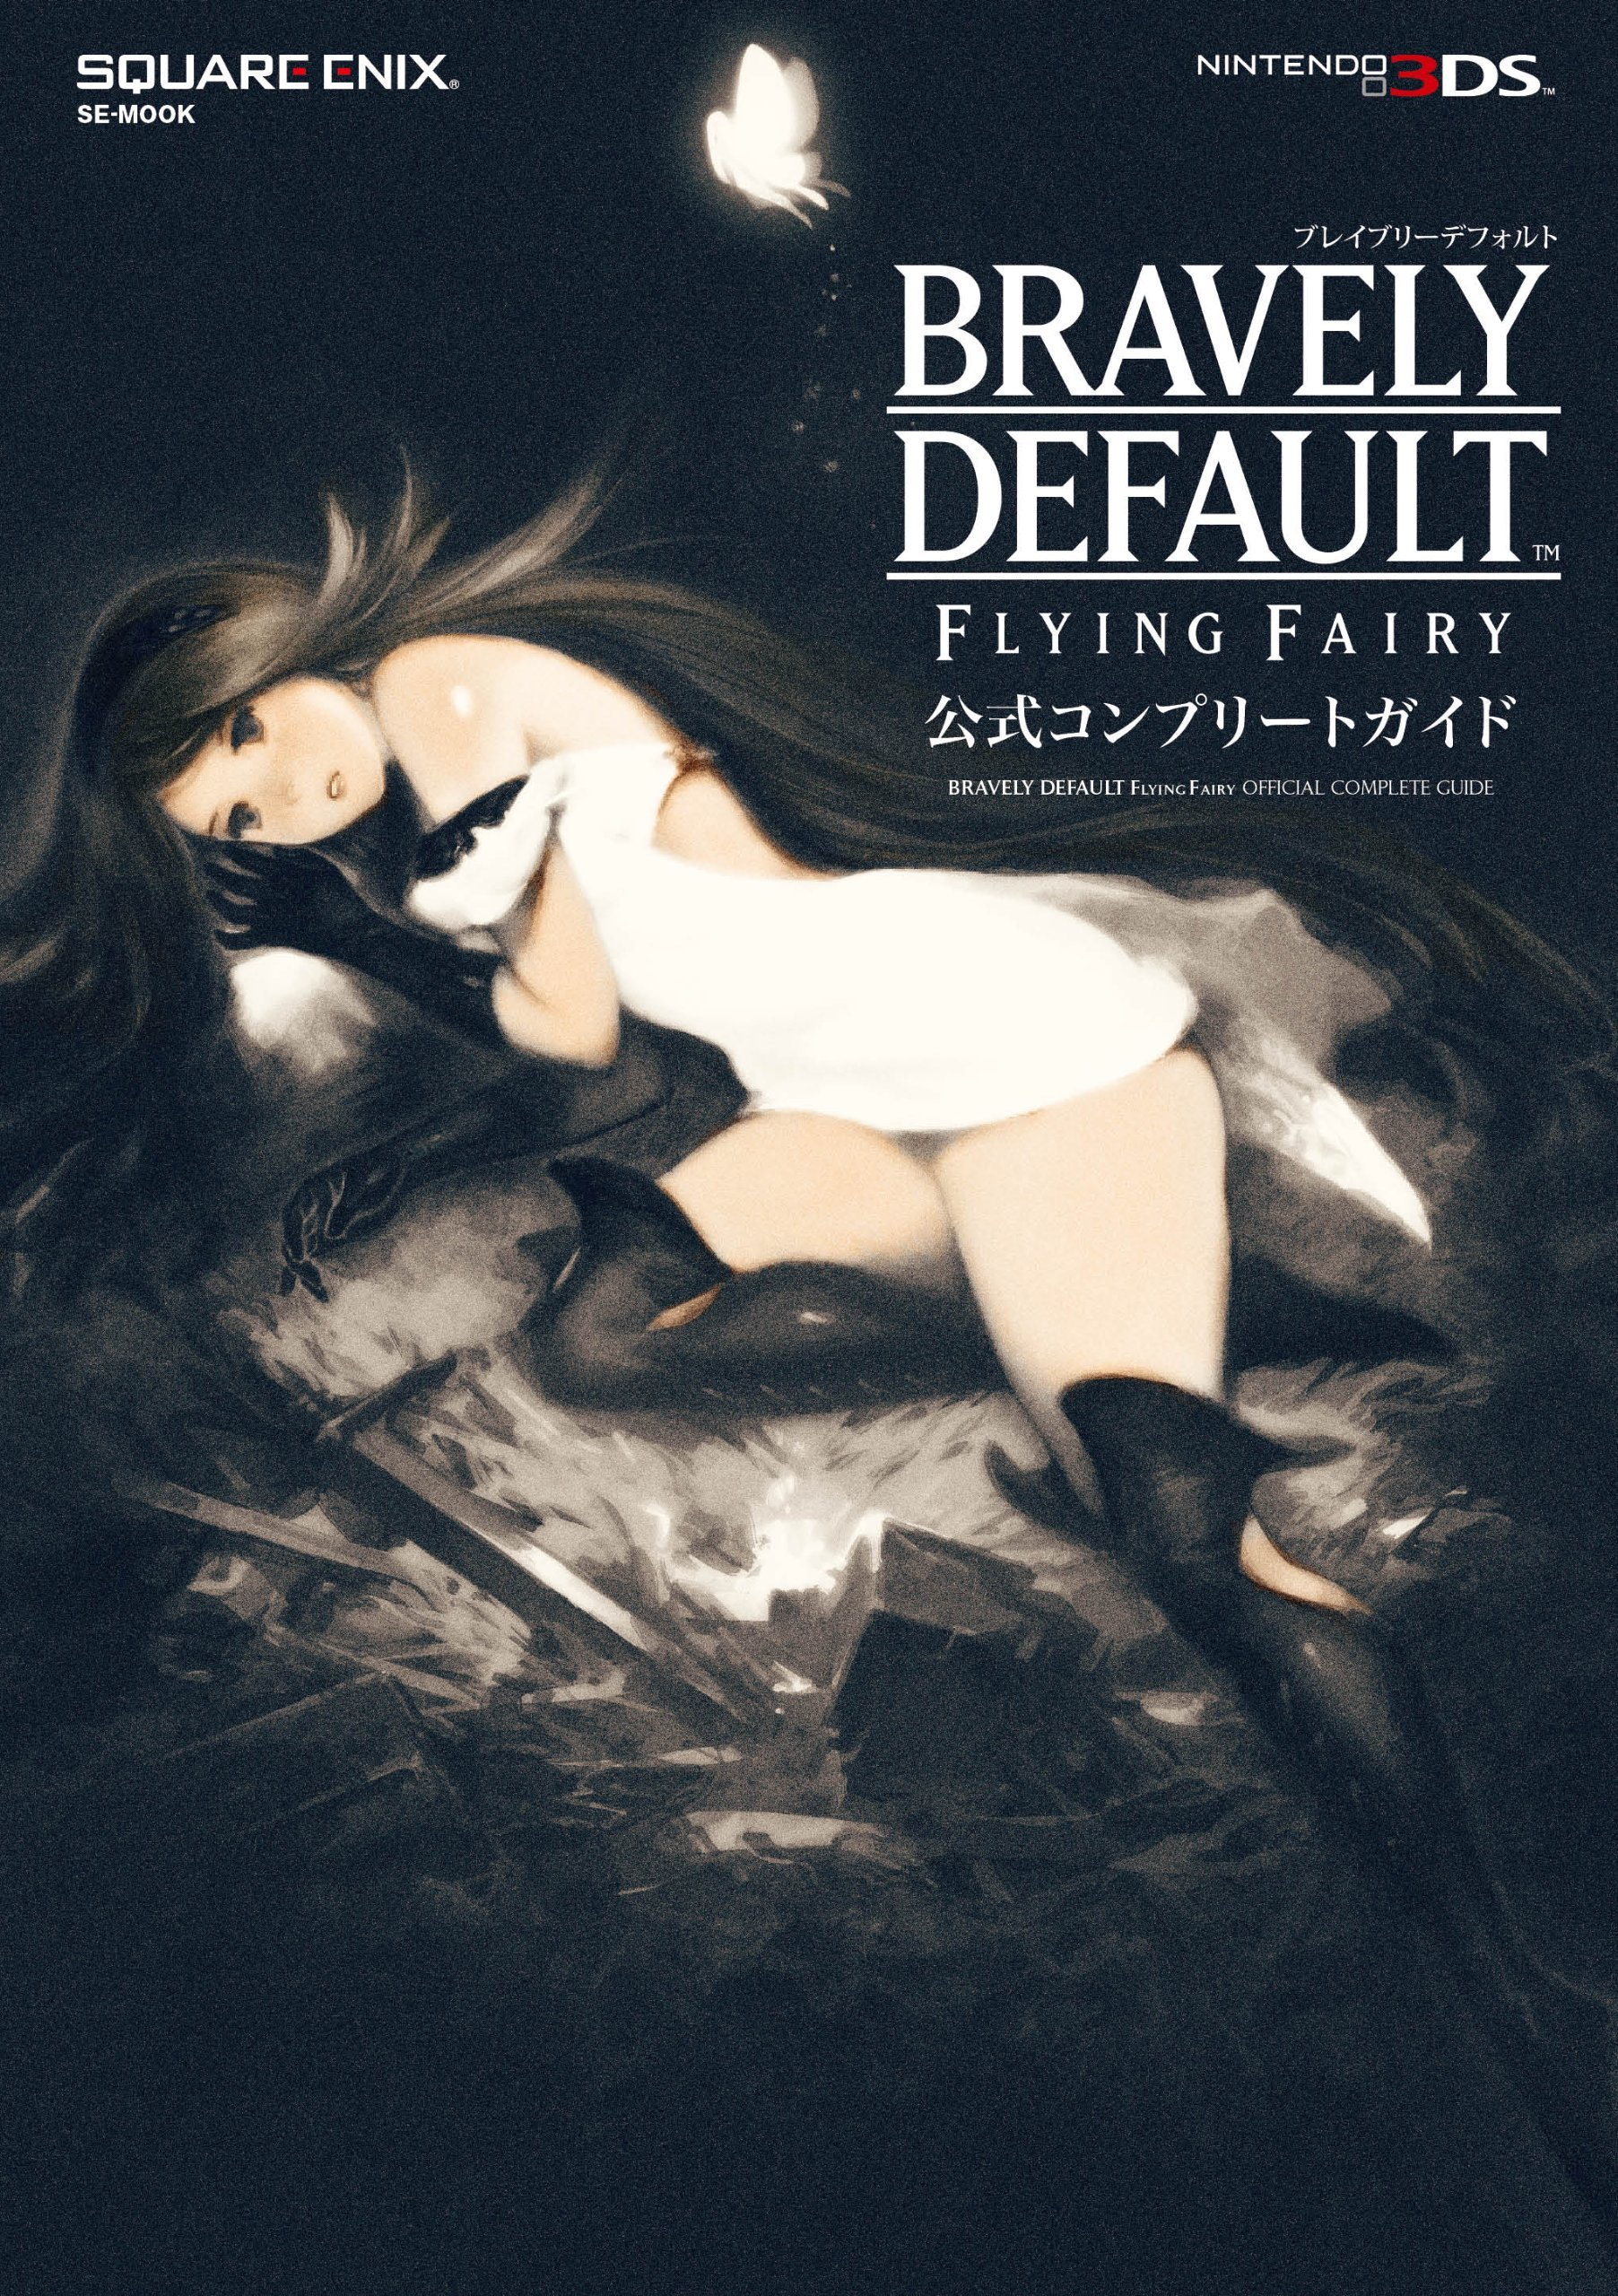 Bravely Default: Flying Fairy - Koushiki Complete Guide